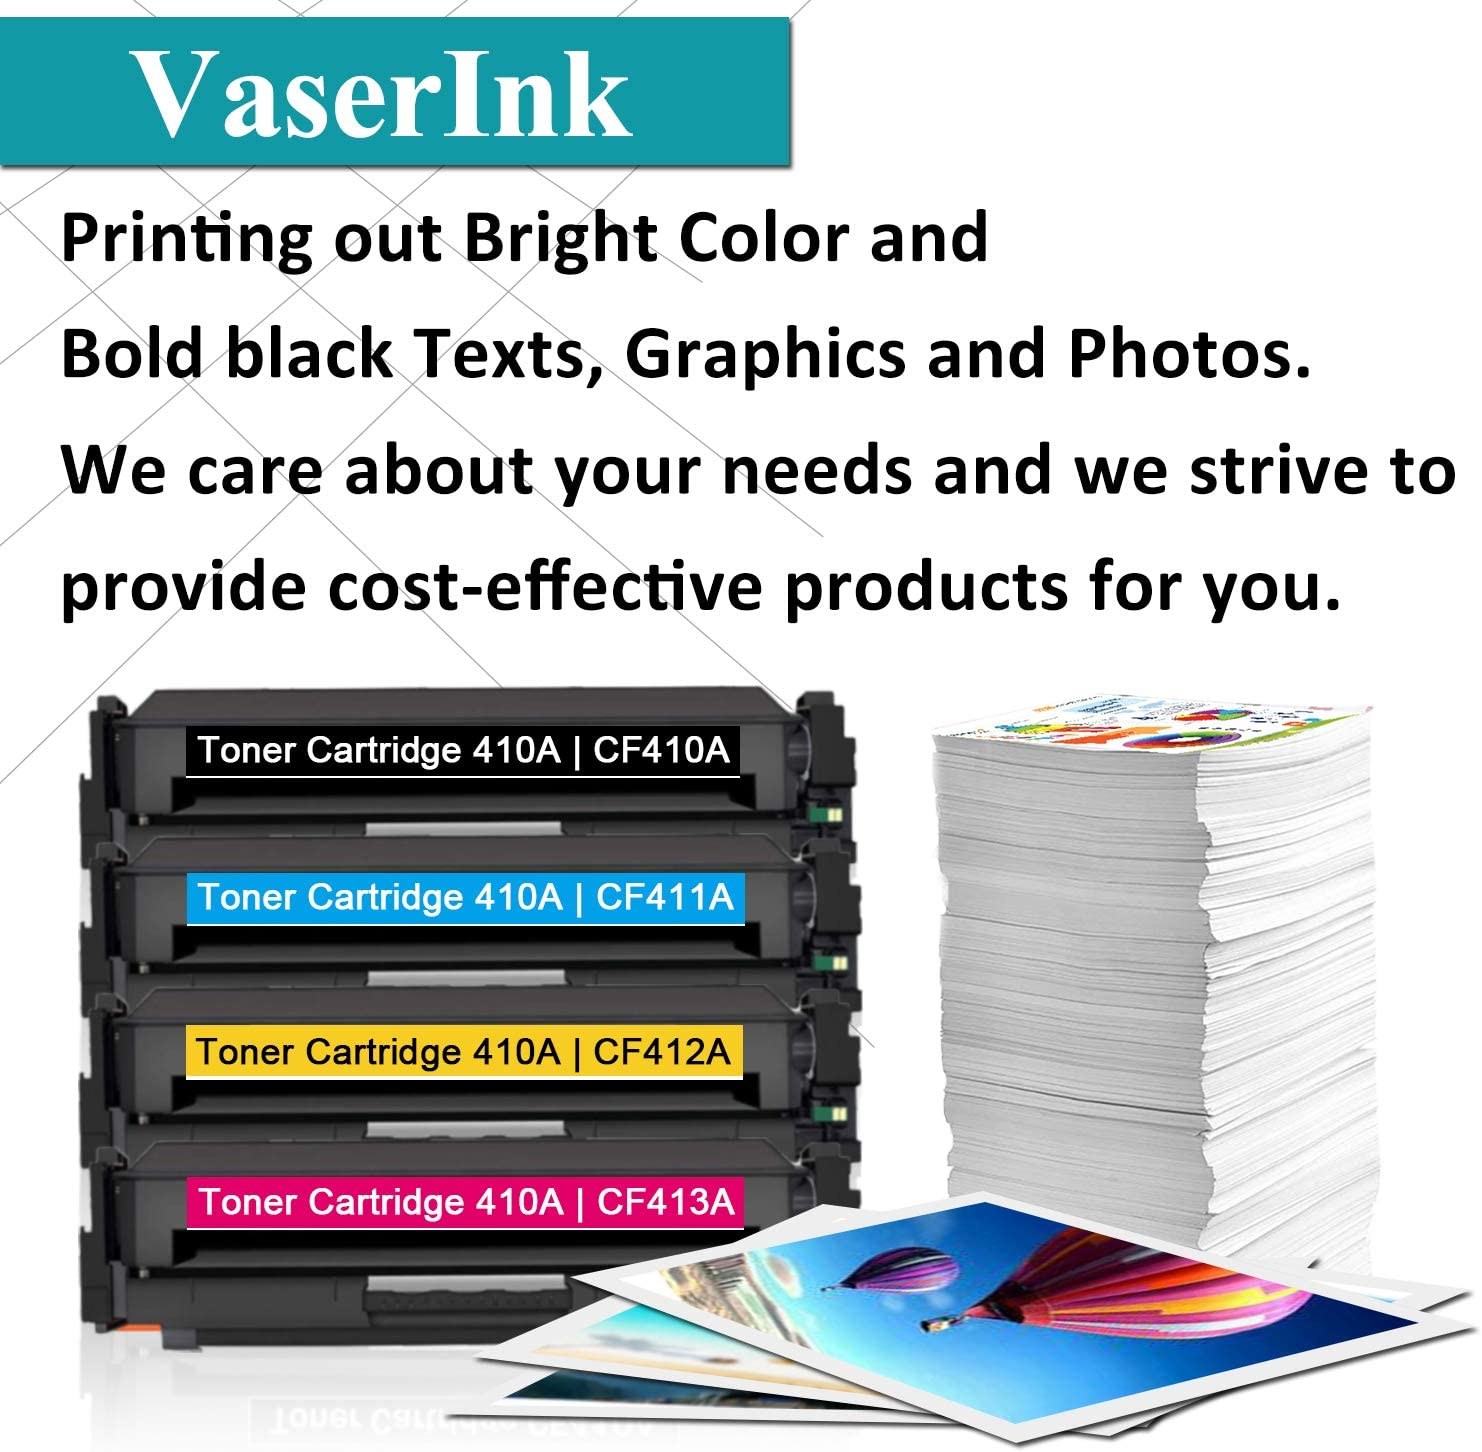 410A 2 Pack - by VaserInk CF411A Cyan Toner Cartridge Replacement for HP Color Laserjet Pro M452dn M452dw M452nw MFP M477fdn M477fdw M477fnw